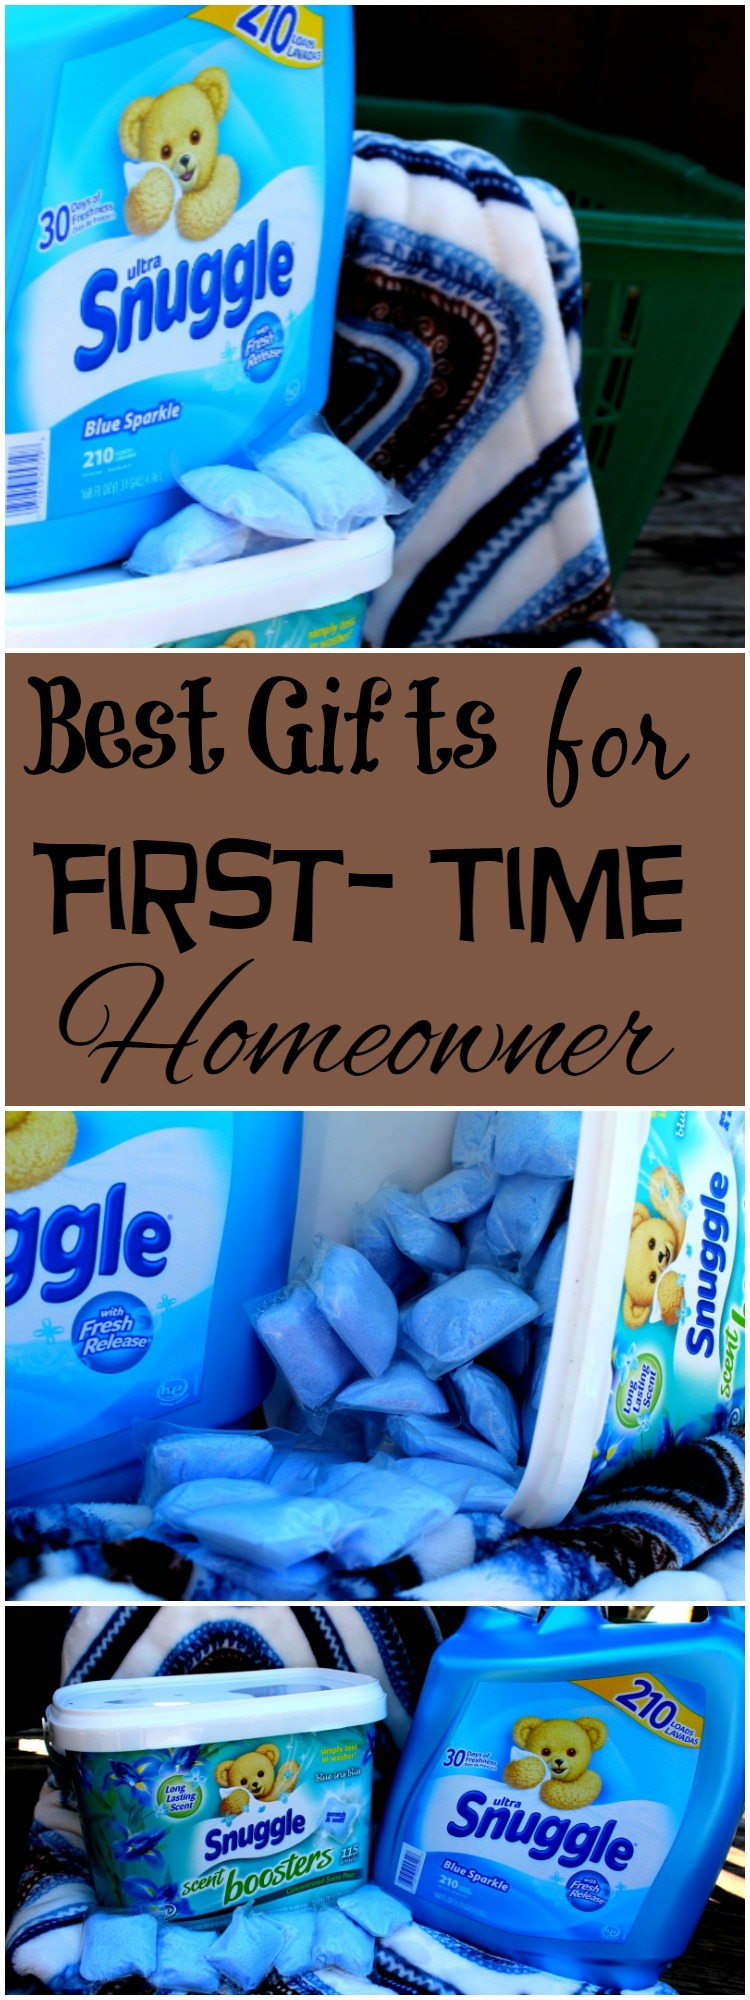 homeowner gifts gift owner owners